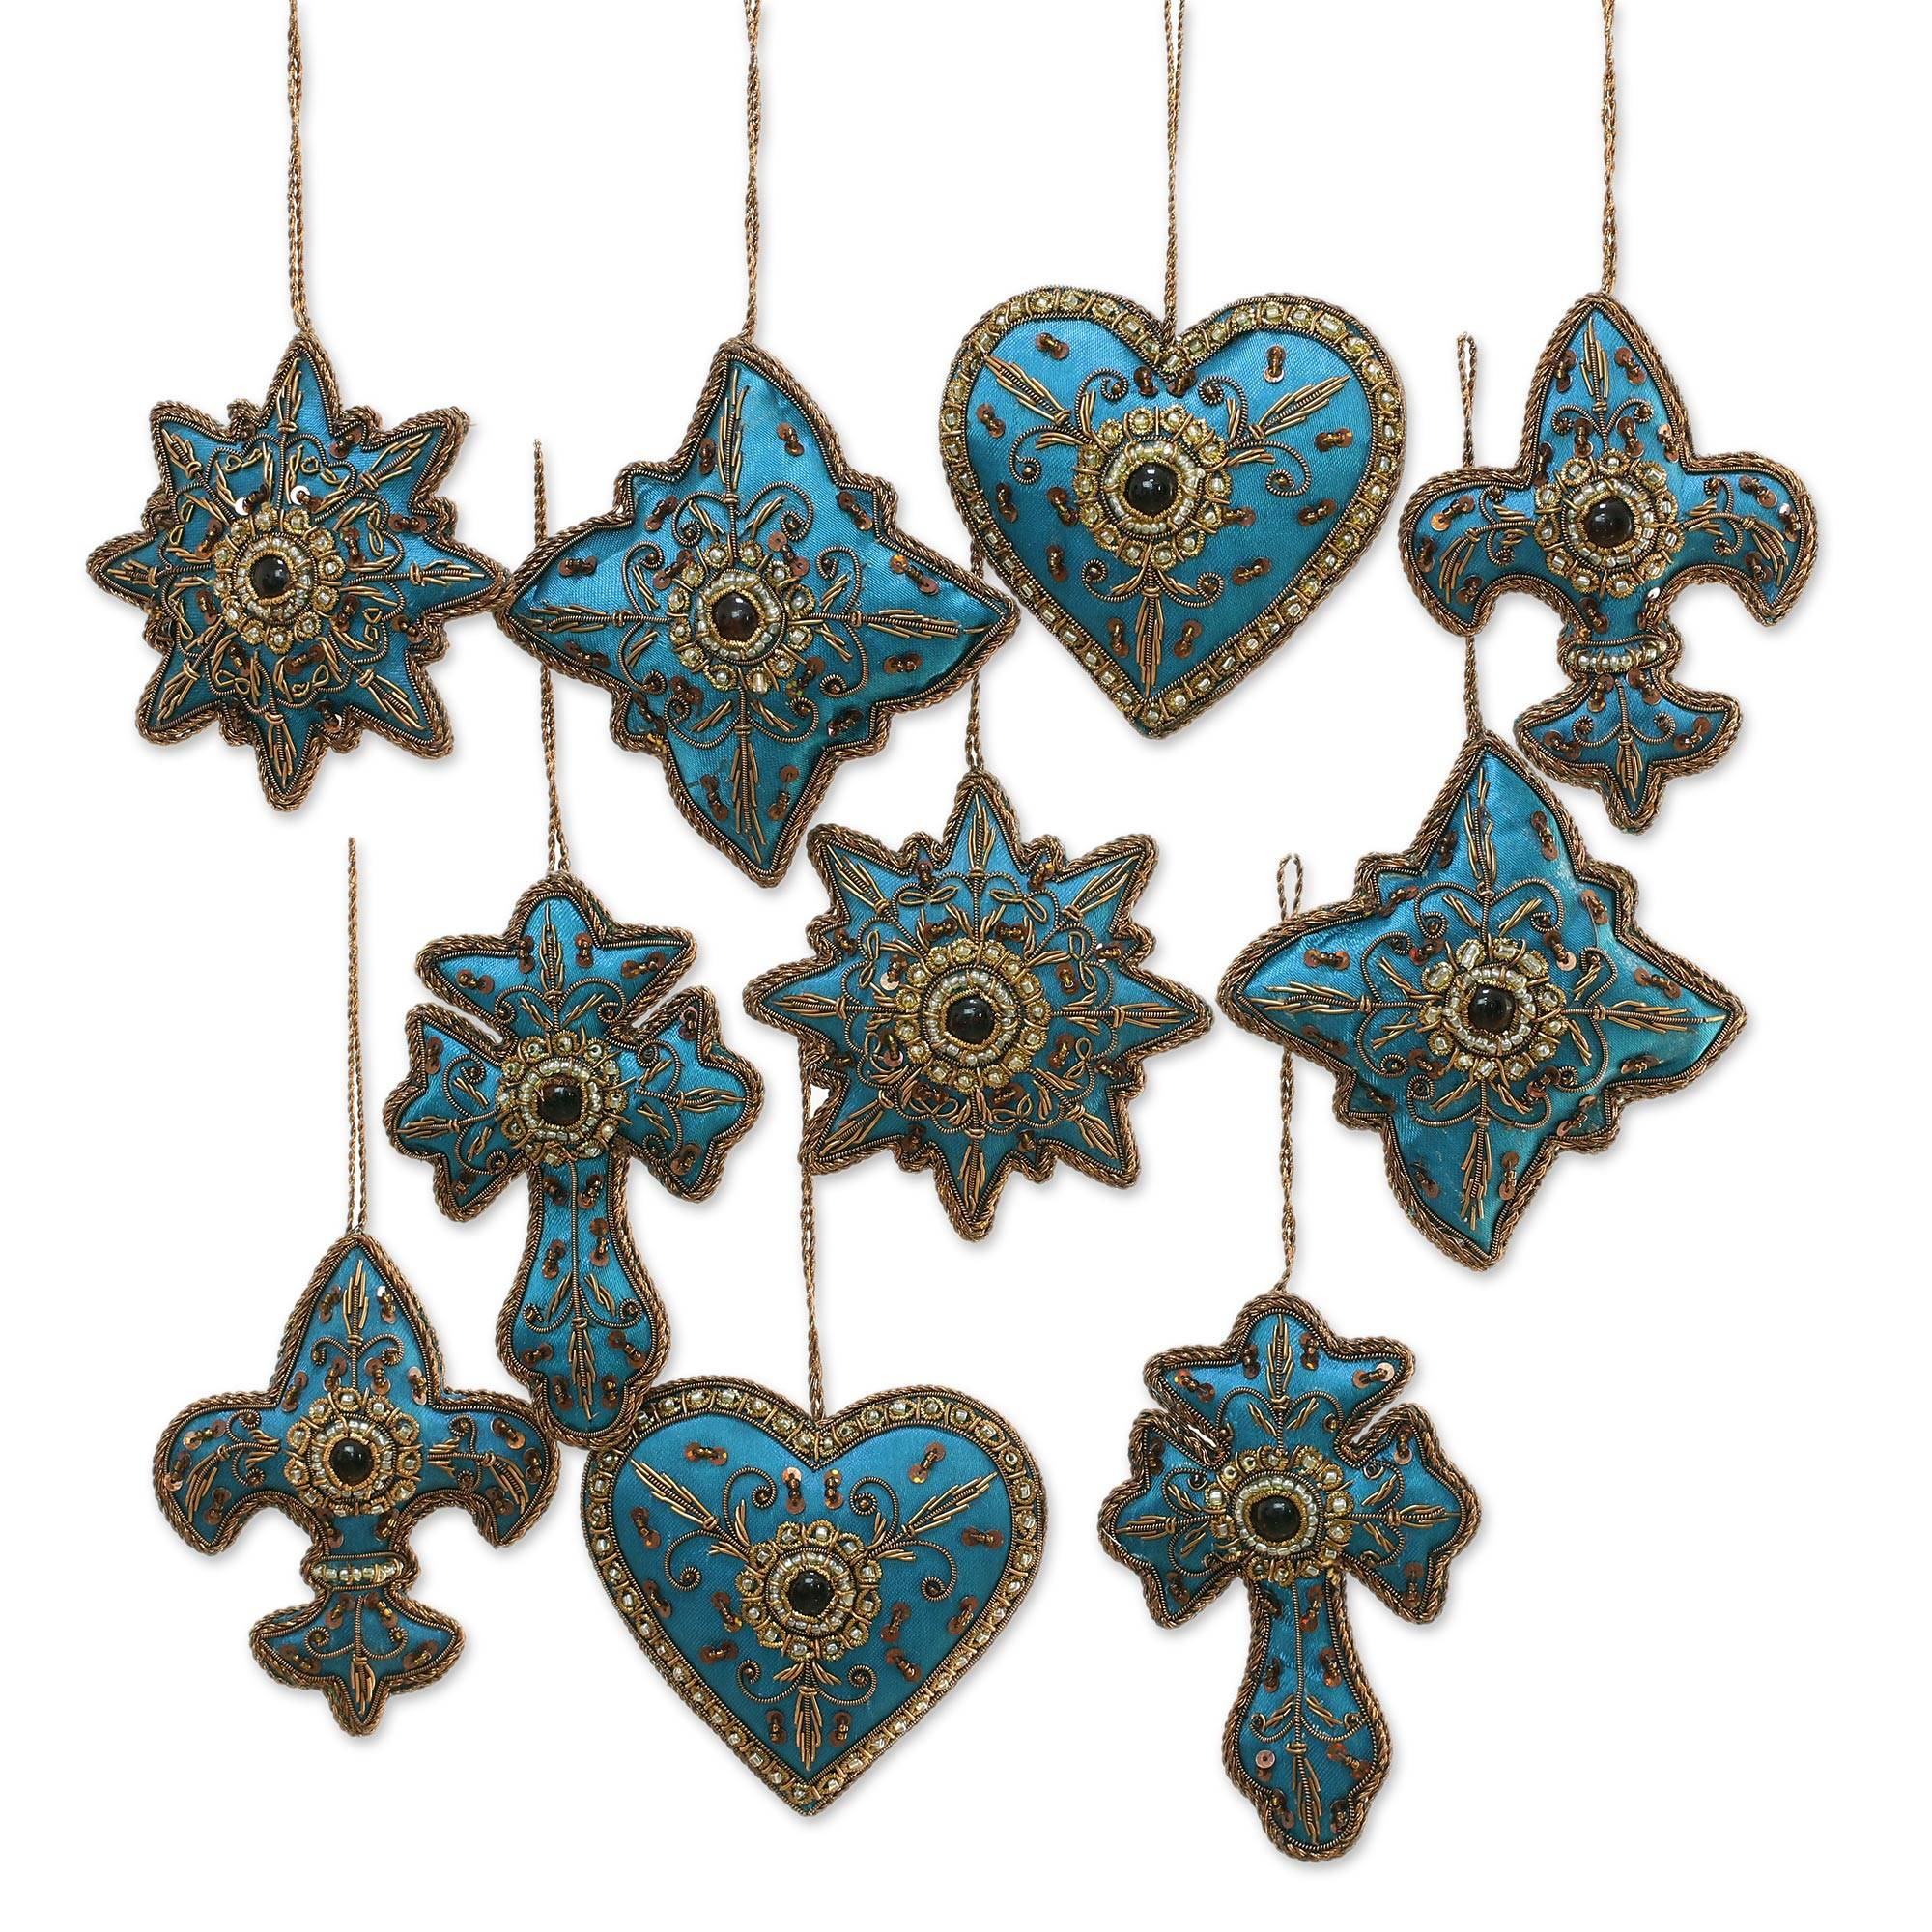 Teal Hand Crafted Beaded Ornaments from India (Set of 10) - Teal Joy ...